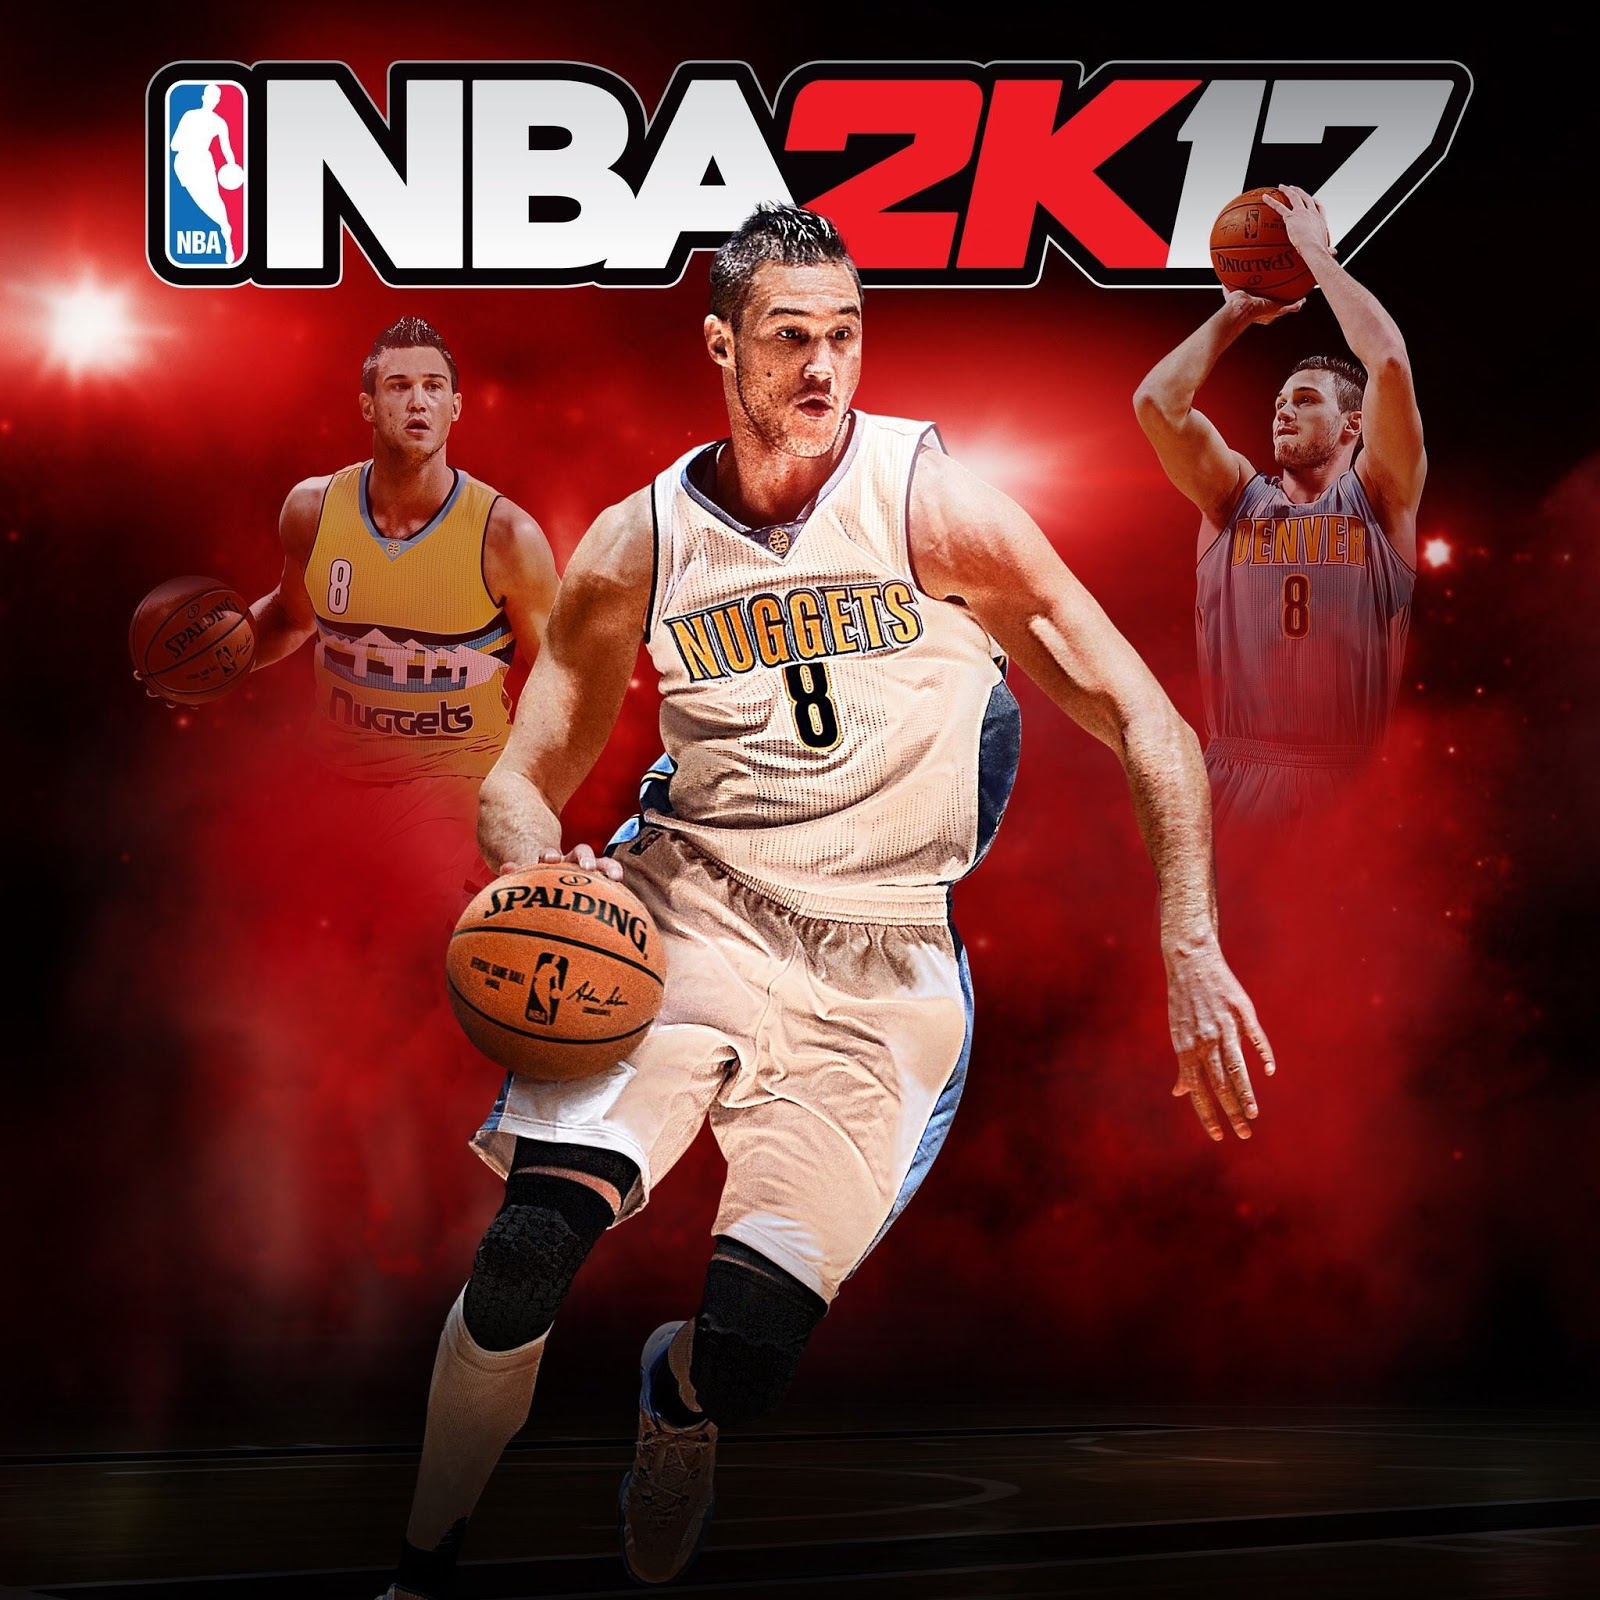 Danilo Gallinari posted the Italian cover of NBA 2K17, featuring himself.